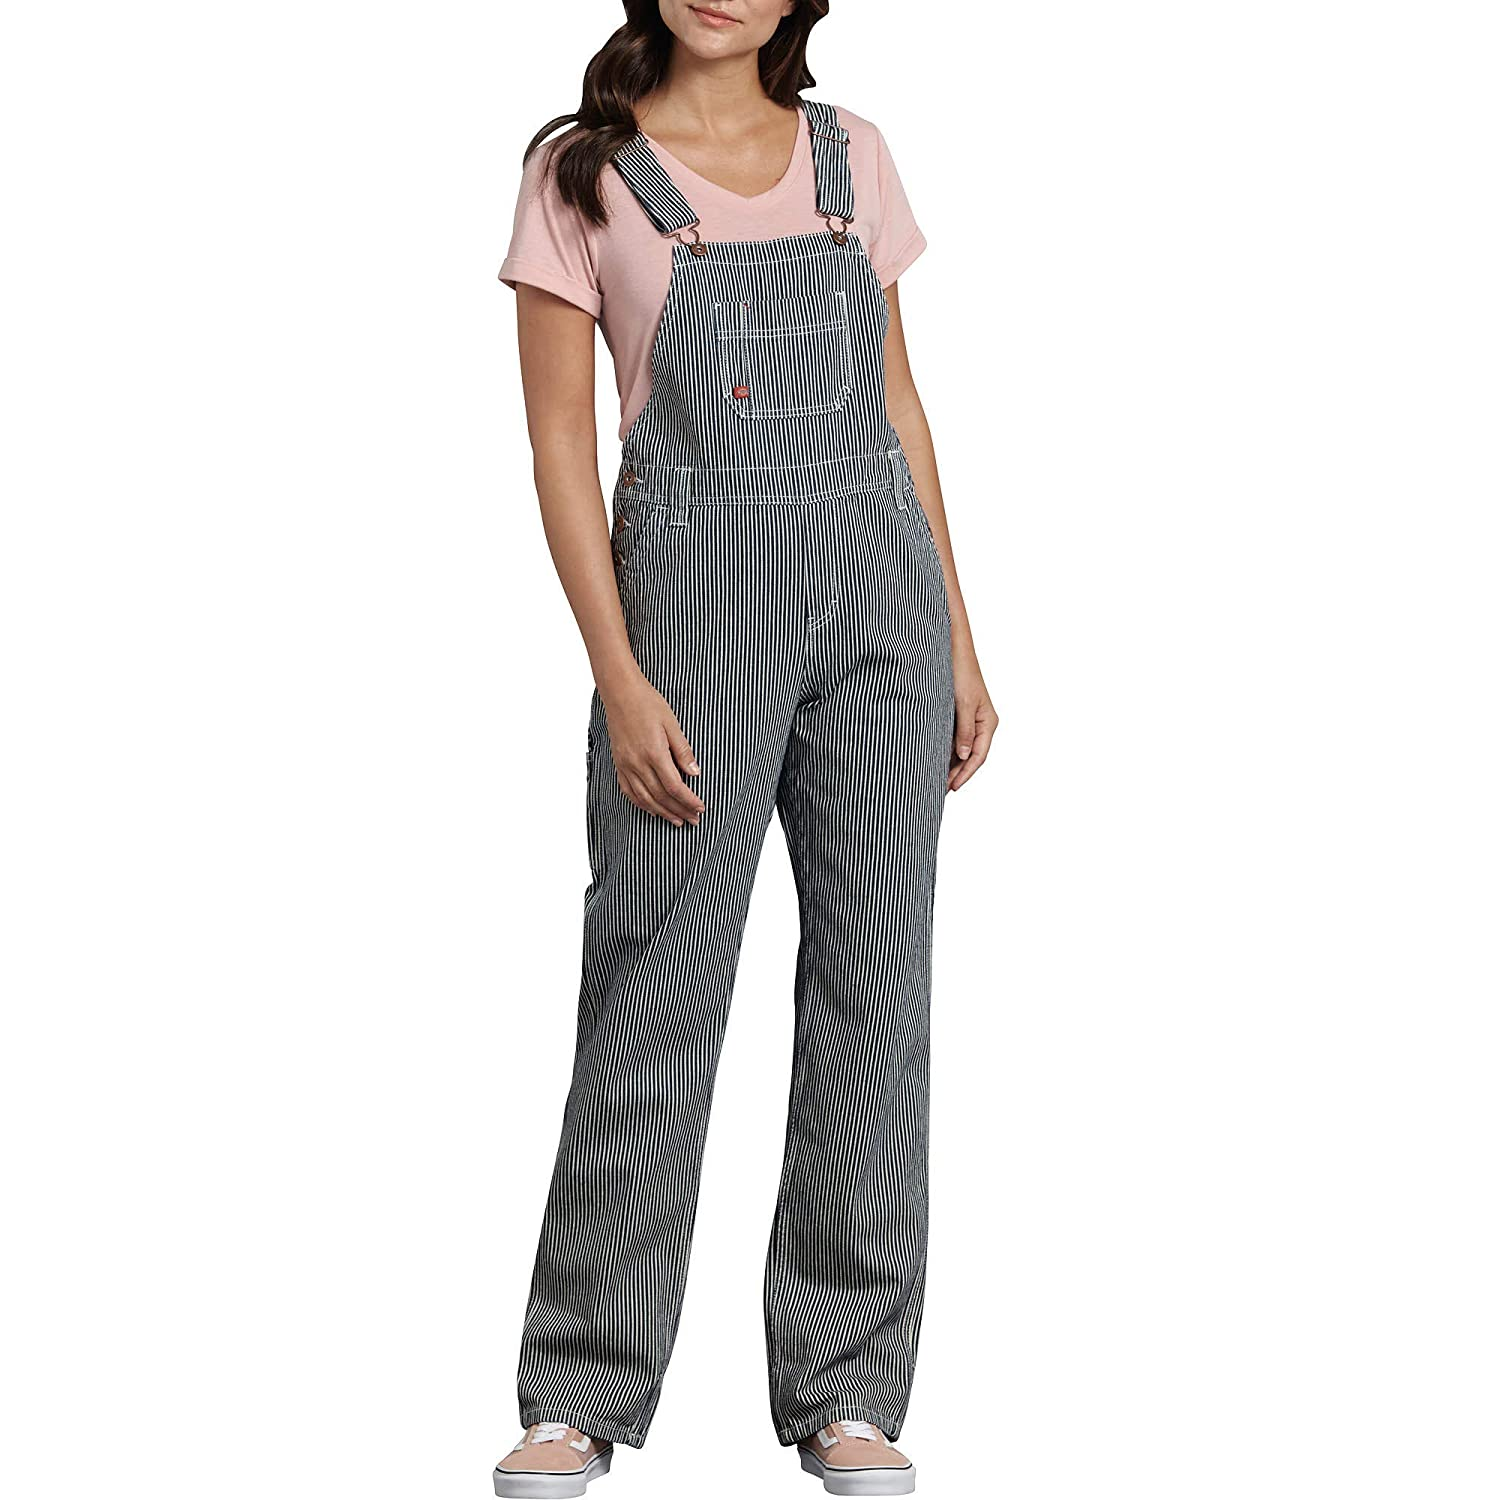 Vintage Overalls 1910s -1950s History & Shop Overalls Dickies Womens Denim Bib Overall $35.99 AT vintagedancer.com